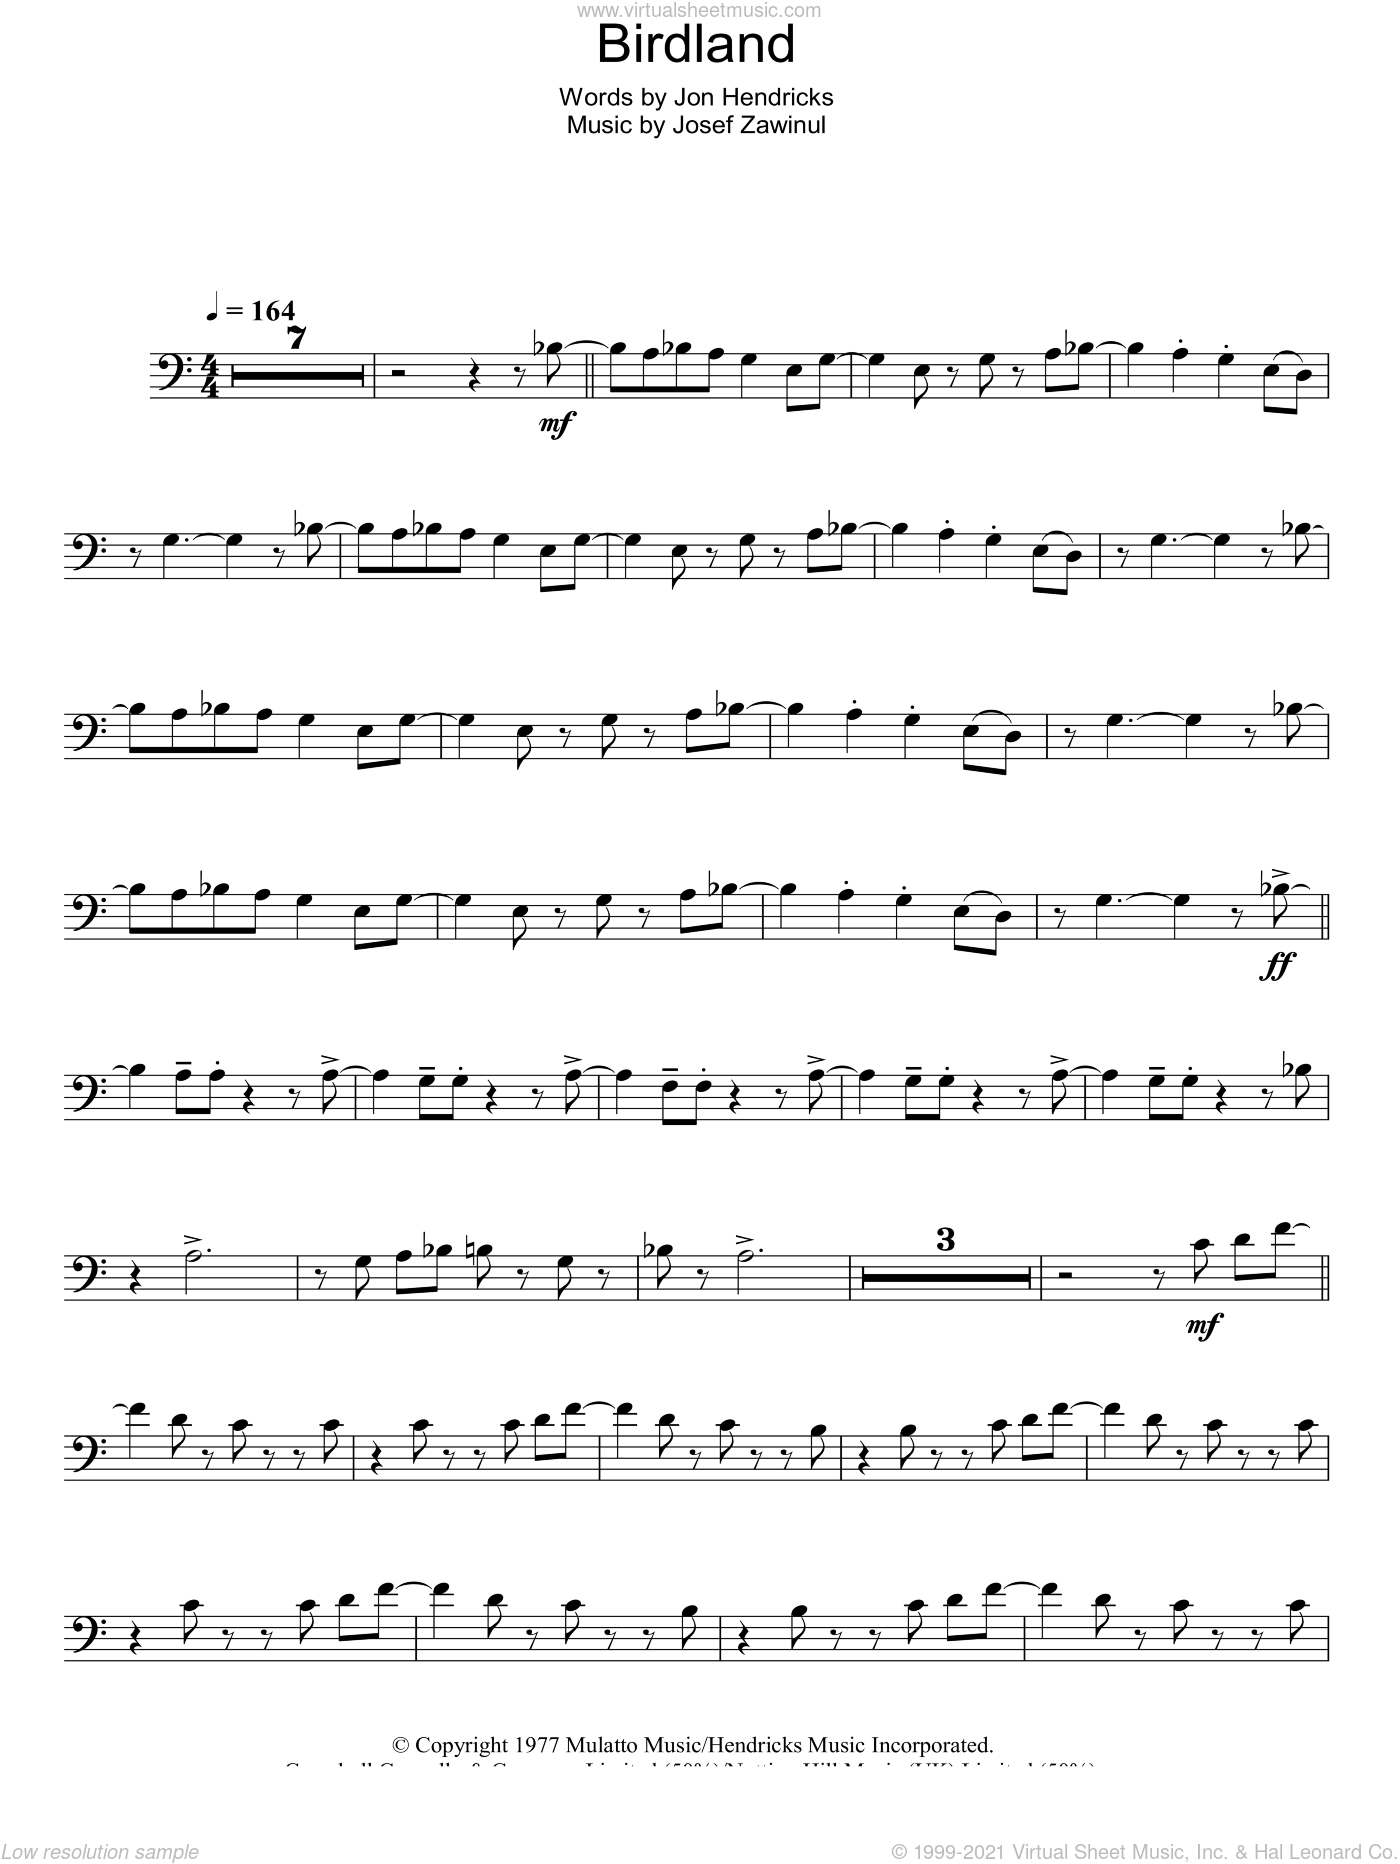 Birdland sheet music for voice, piano or guitar by Weather Report, Josef Zawinul and Jon Hendricks, intermediate. Score Image Preview.